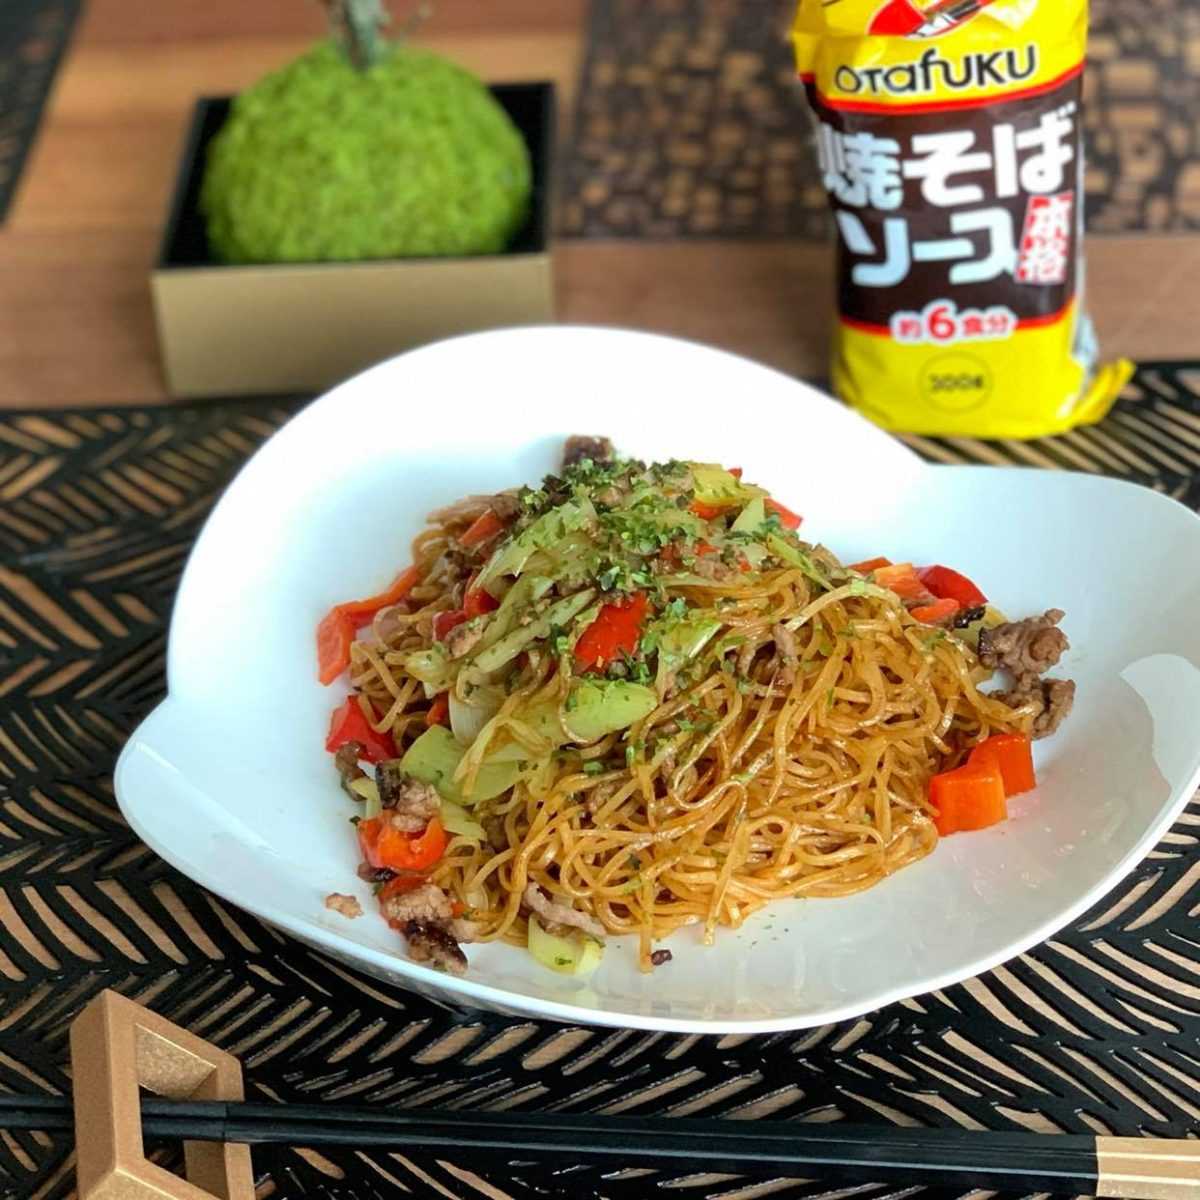 online yakisoba course: (free with Instagram-posting)